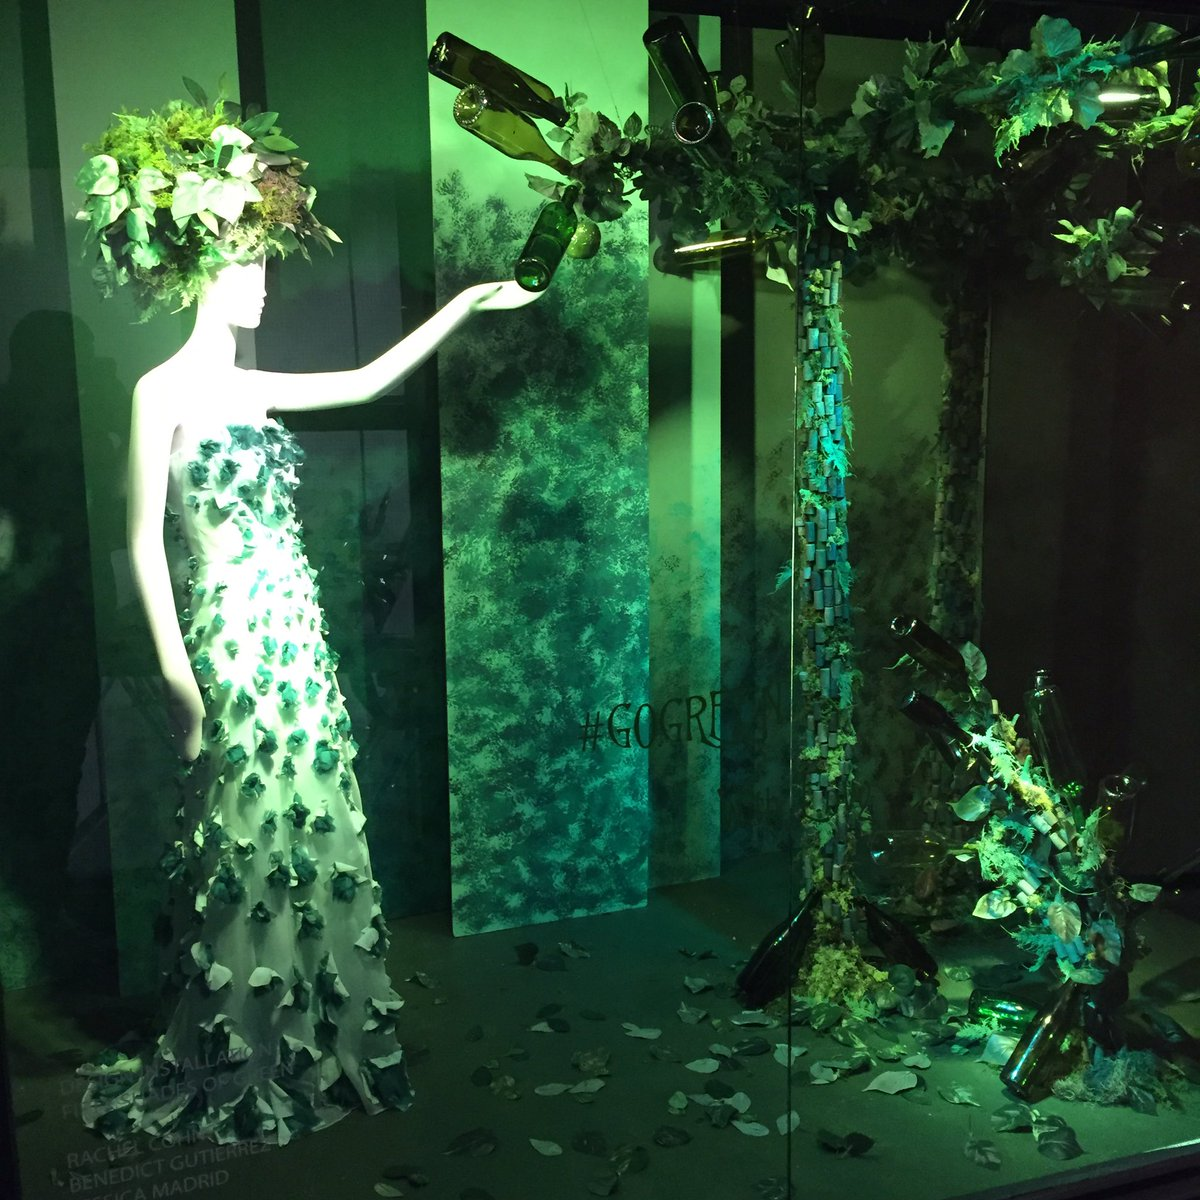 Admirable Green Nc Our Window Display 50 Shades On Obsessed On Obsessed Our Window Green Lawn Care 50 Shades houzz 01 50 Shades Of Green